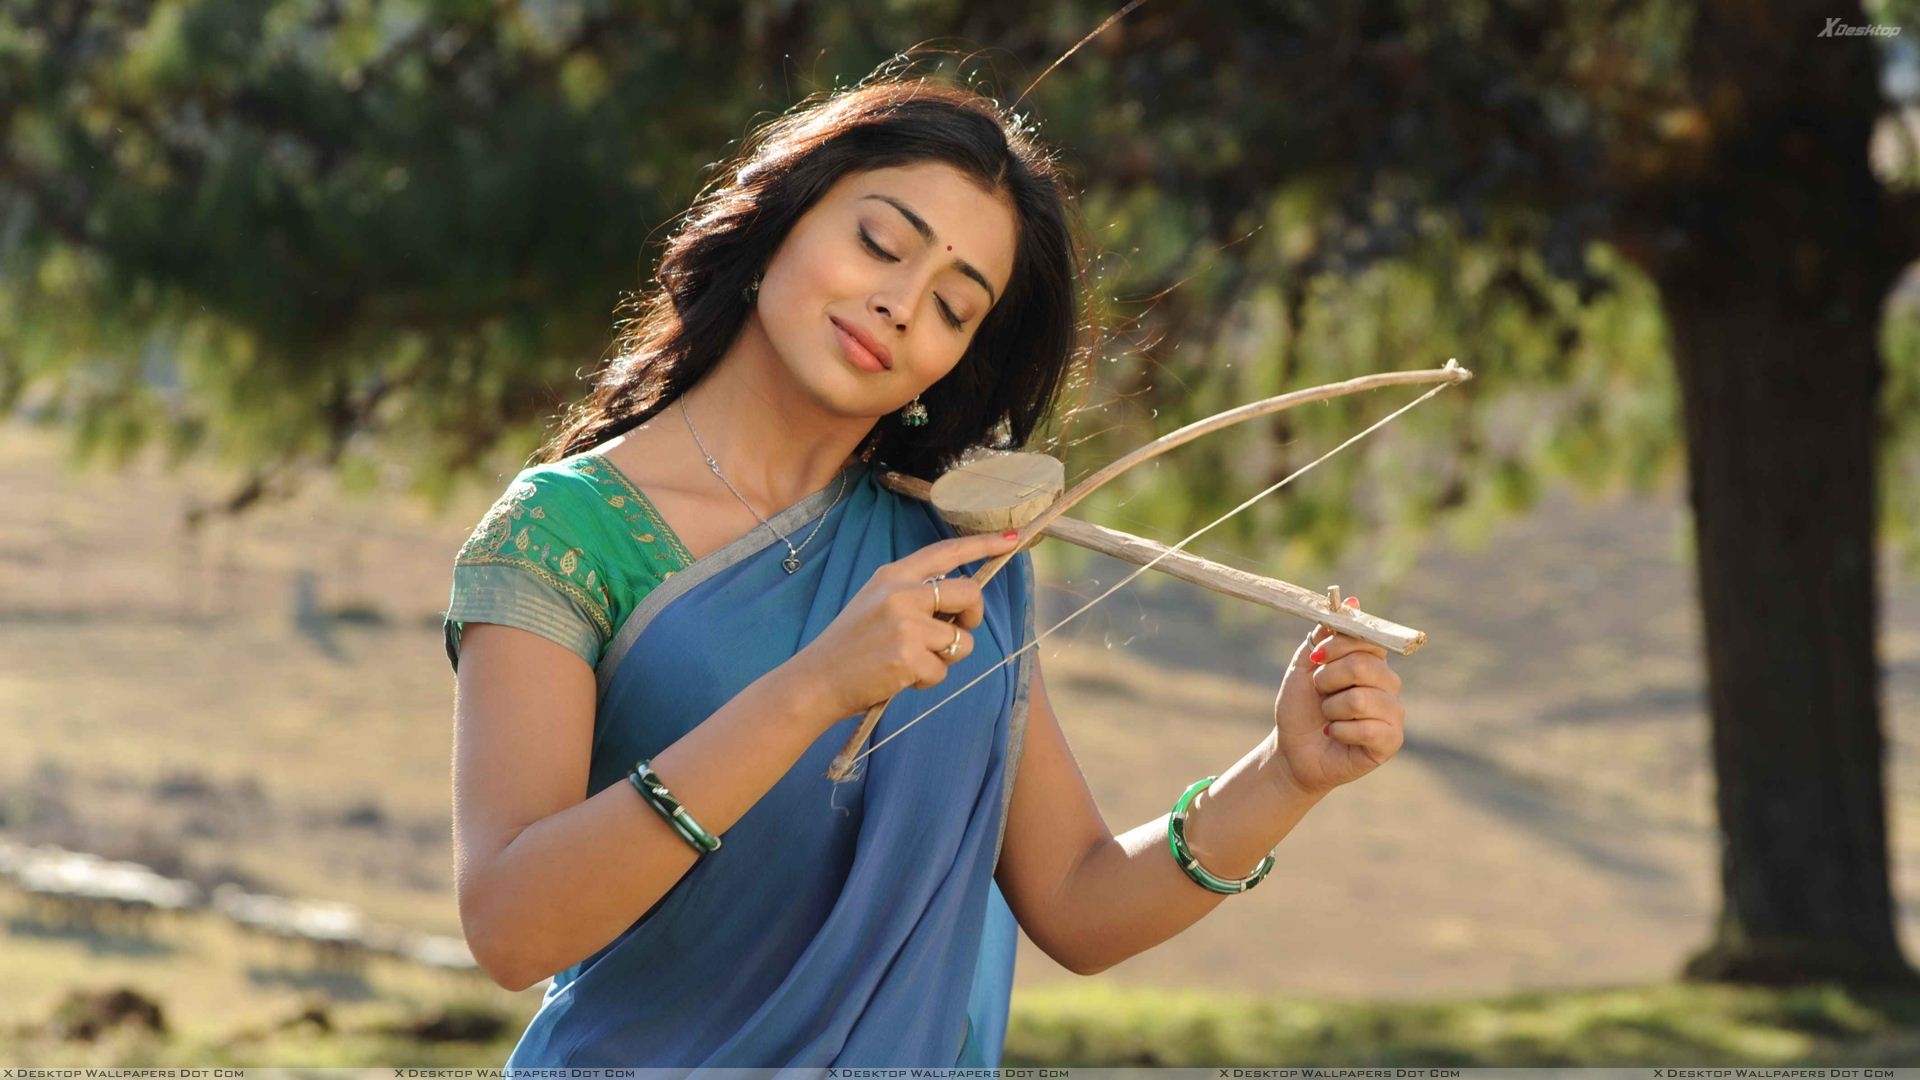 shriya saran closed eyes n instrument in hand in kutty movie wallpaper